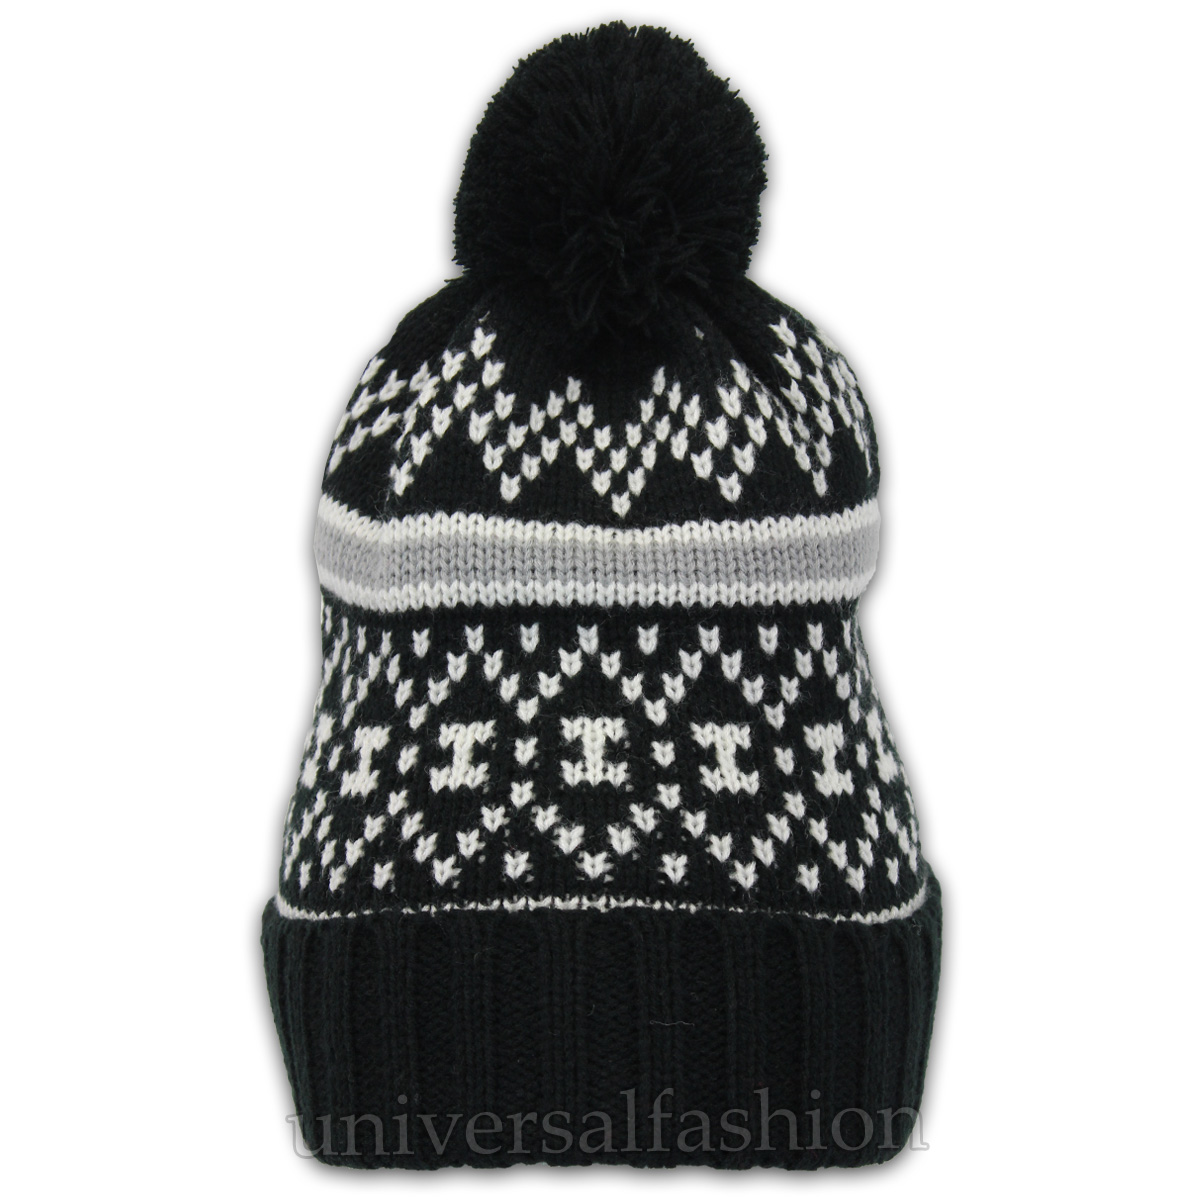 5e03abcff0c ... Winter Reindeer Pom Pom Beanie Hat Black - Pom2 One Size. About this  product. Picture 1 of 2  Picture 2 of 2